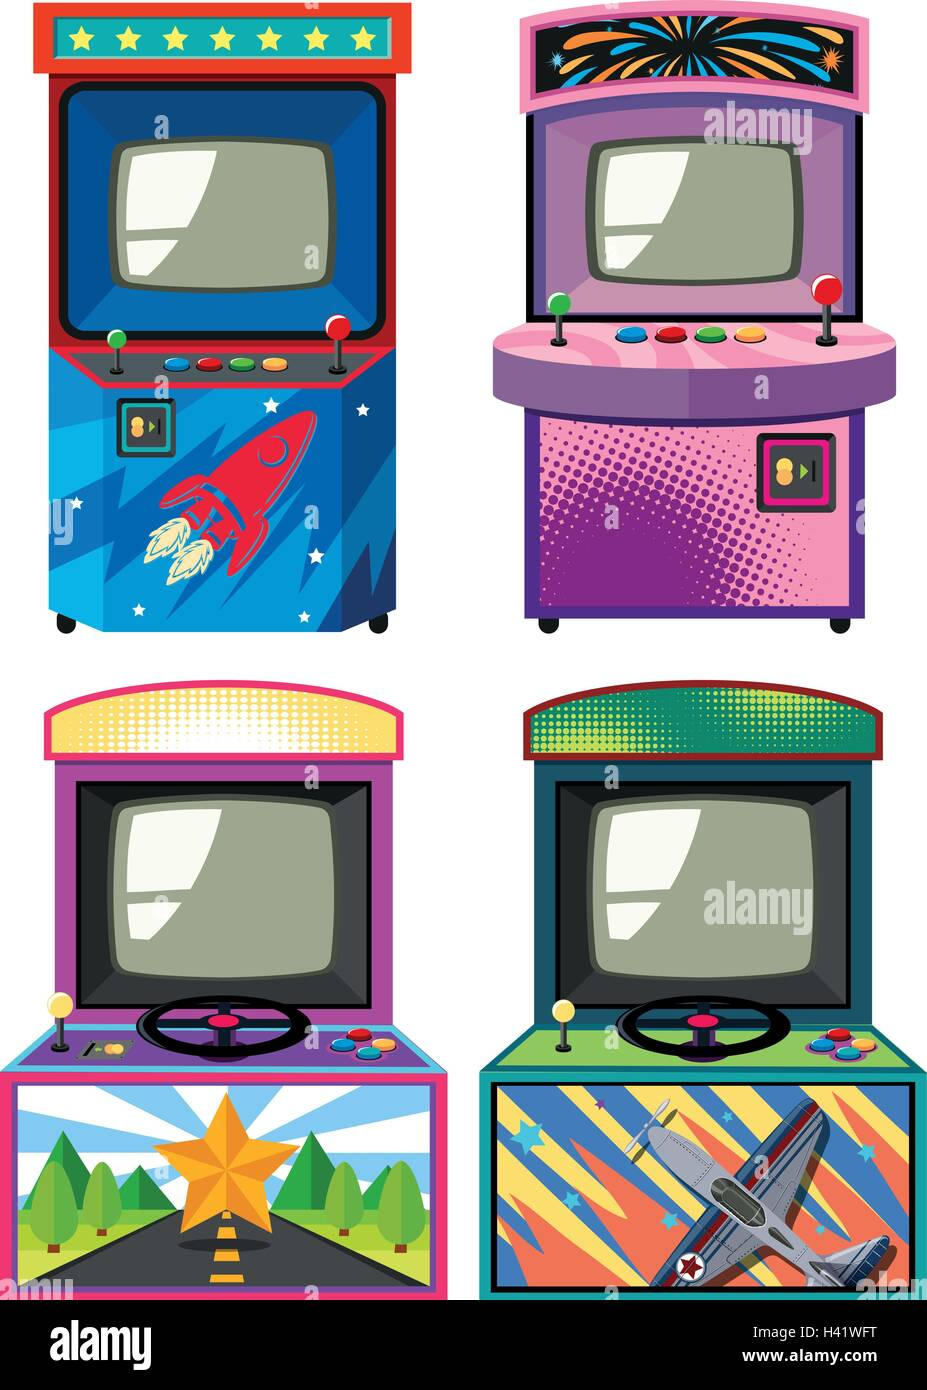 Four design of arcade gameboxes illustration - Stock Vector